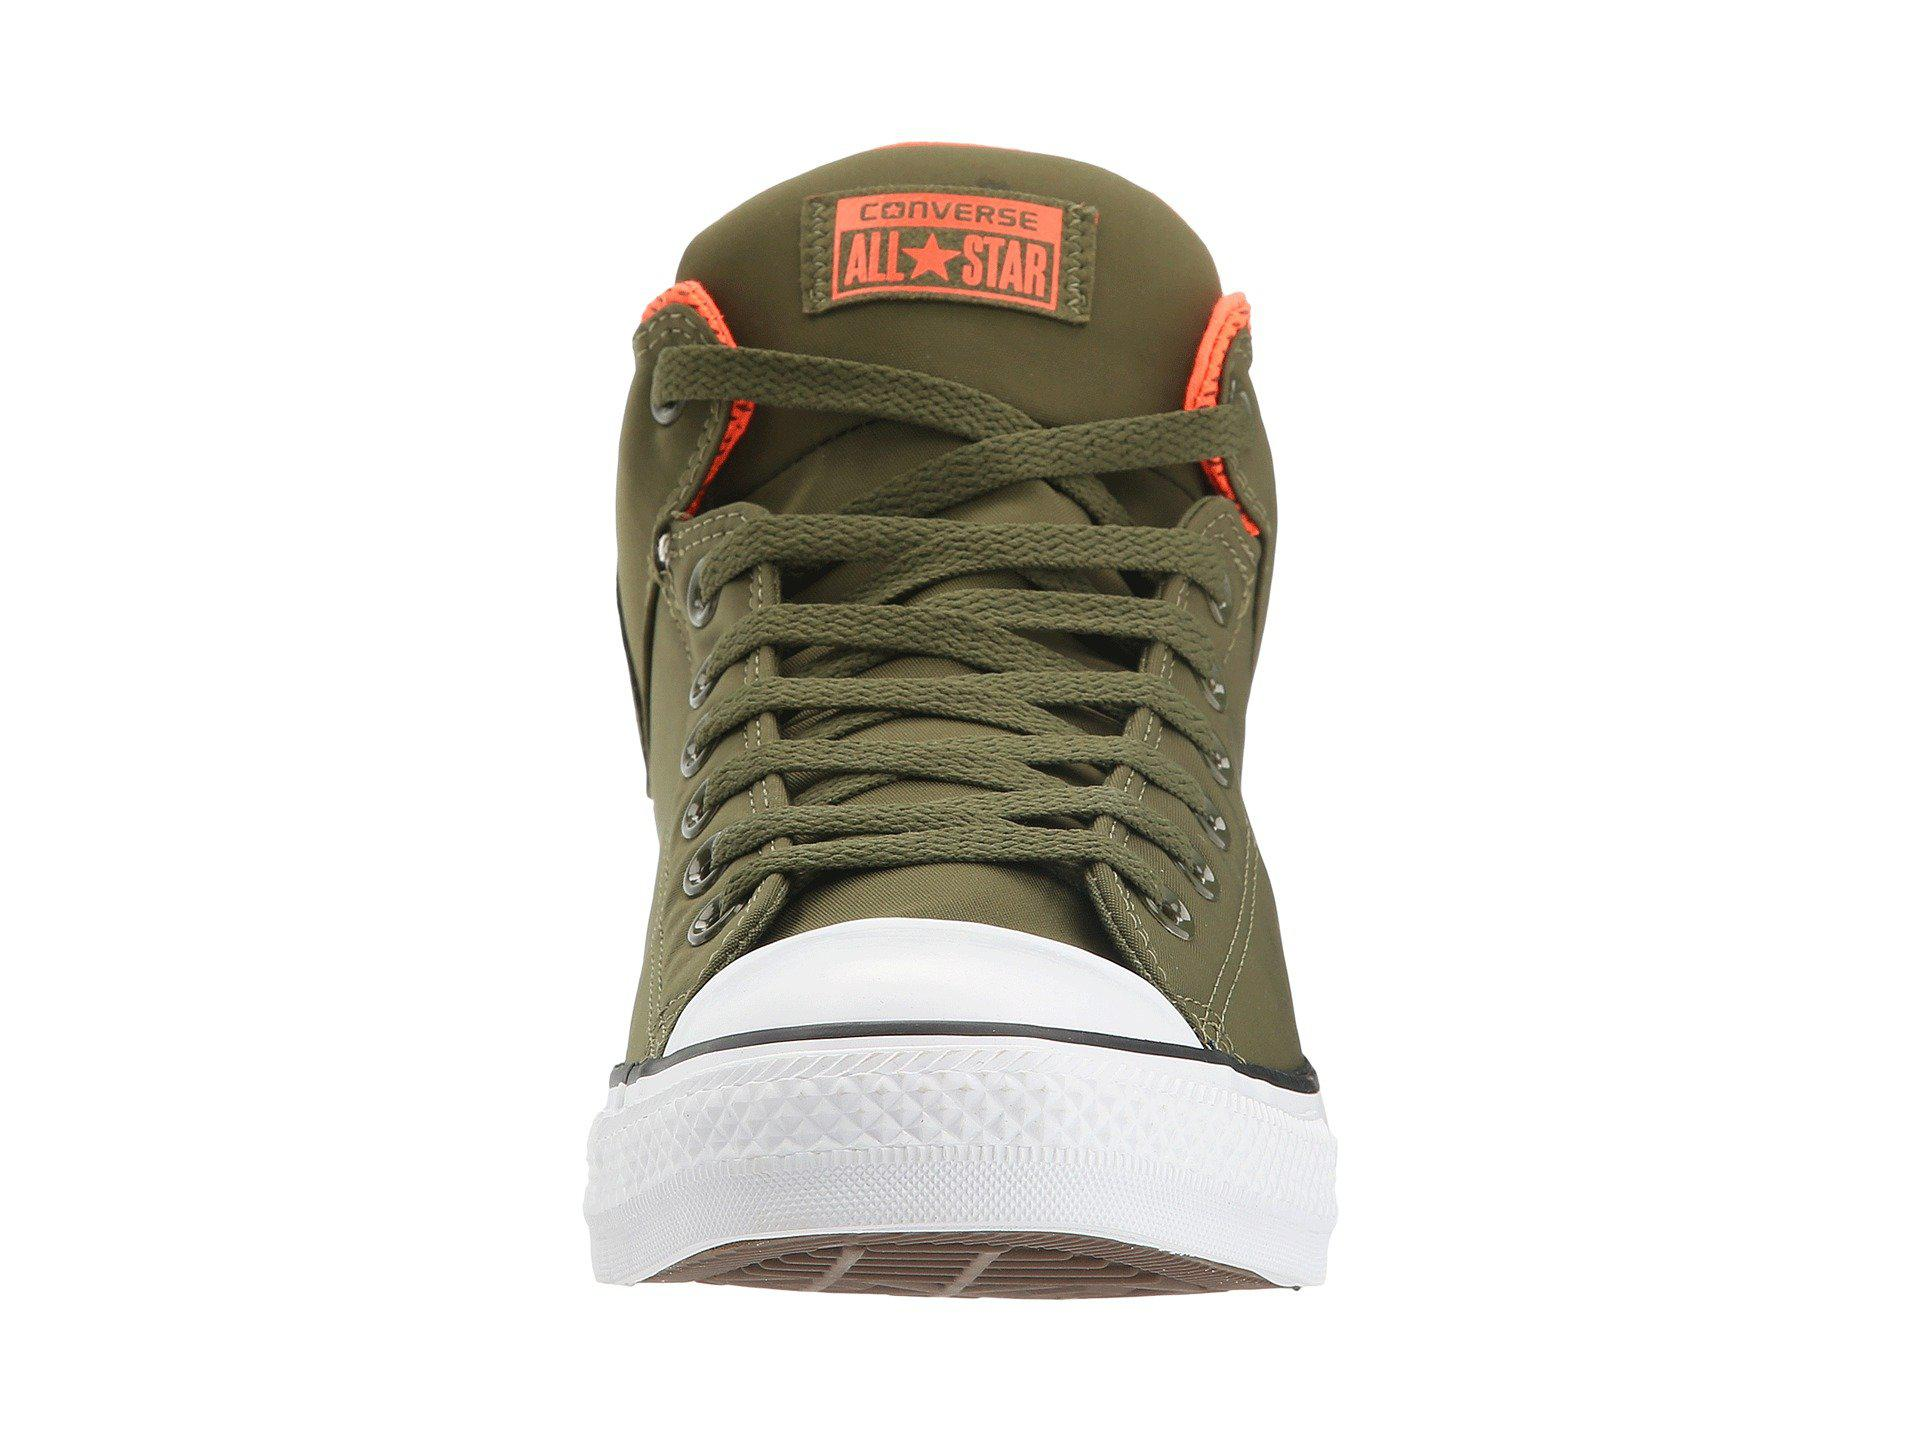 84b5aa280cb6 Lyst - Converse Chuck Taylor All Star High Street Sneakers in Green ...